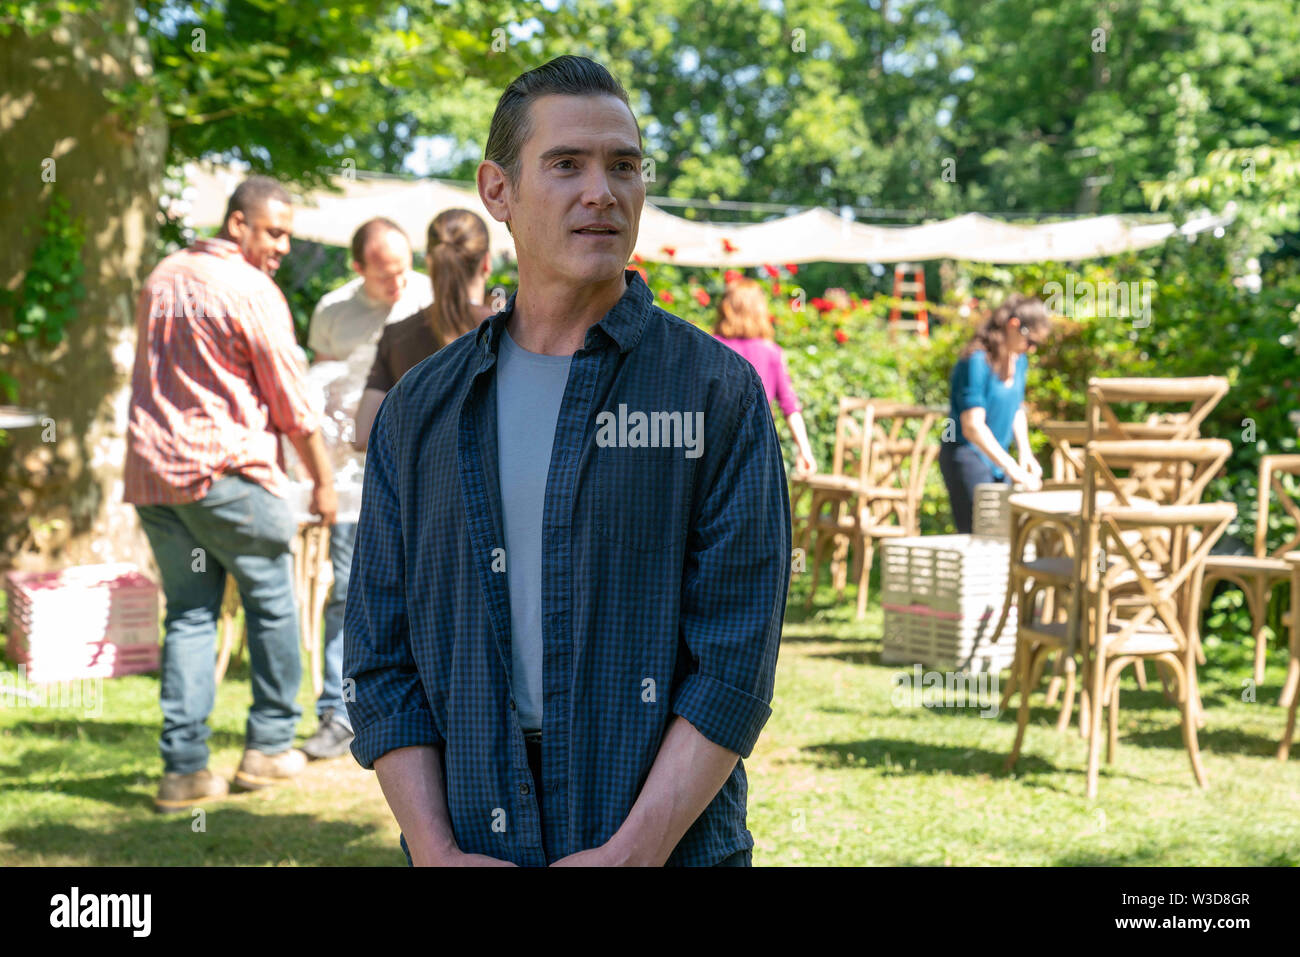 RELEASE DATE: August 9, 2019 TITLE: After The Wedding STUDIO: Sony Pictures DIRECTOR: Bart Freundlich PLOT: A manager of an orphanage in Kolkata travels to New York to meet a benefactor. STARRING: BILLY CRUDUP as Oscar Carlson. (Credit Image: © Sony Pictures/Entertainment Pictures) Stock Photo